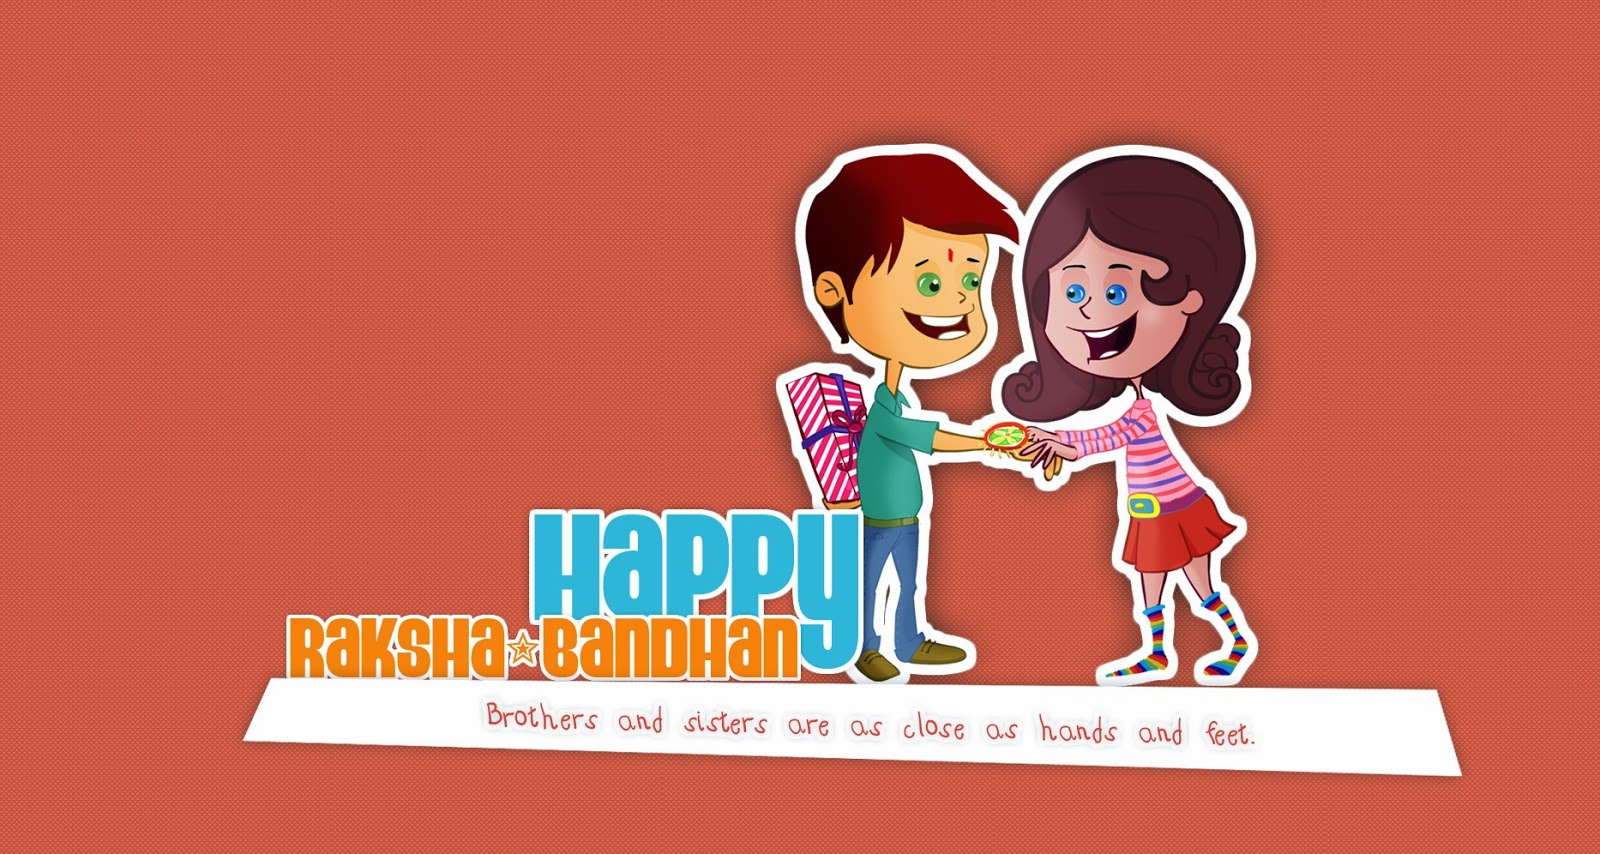 Happy Raksha bandhan Images,Pictures,imgs,pics for Sisters,Brothers 2014